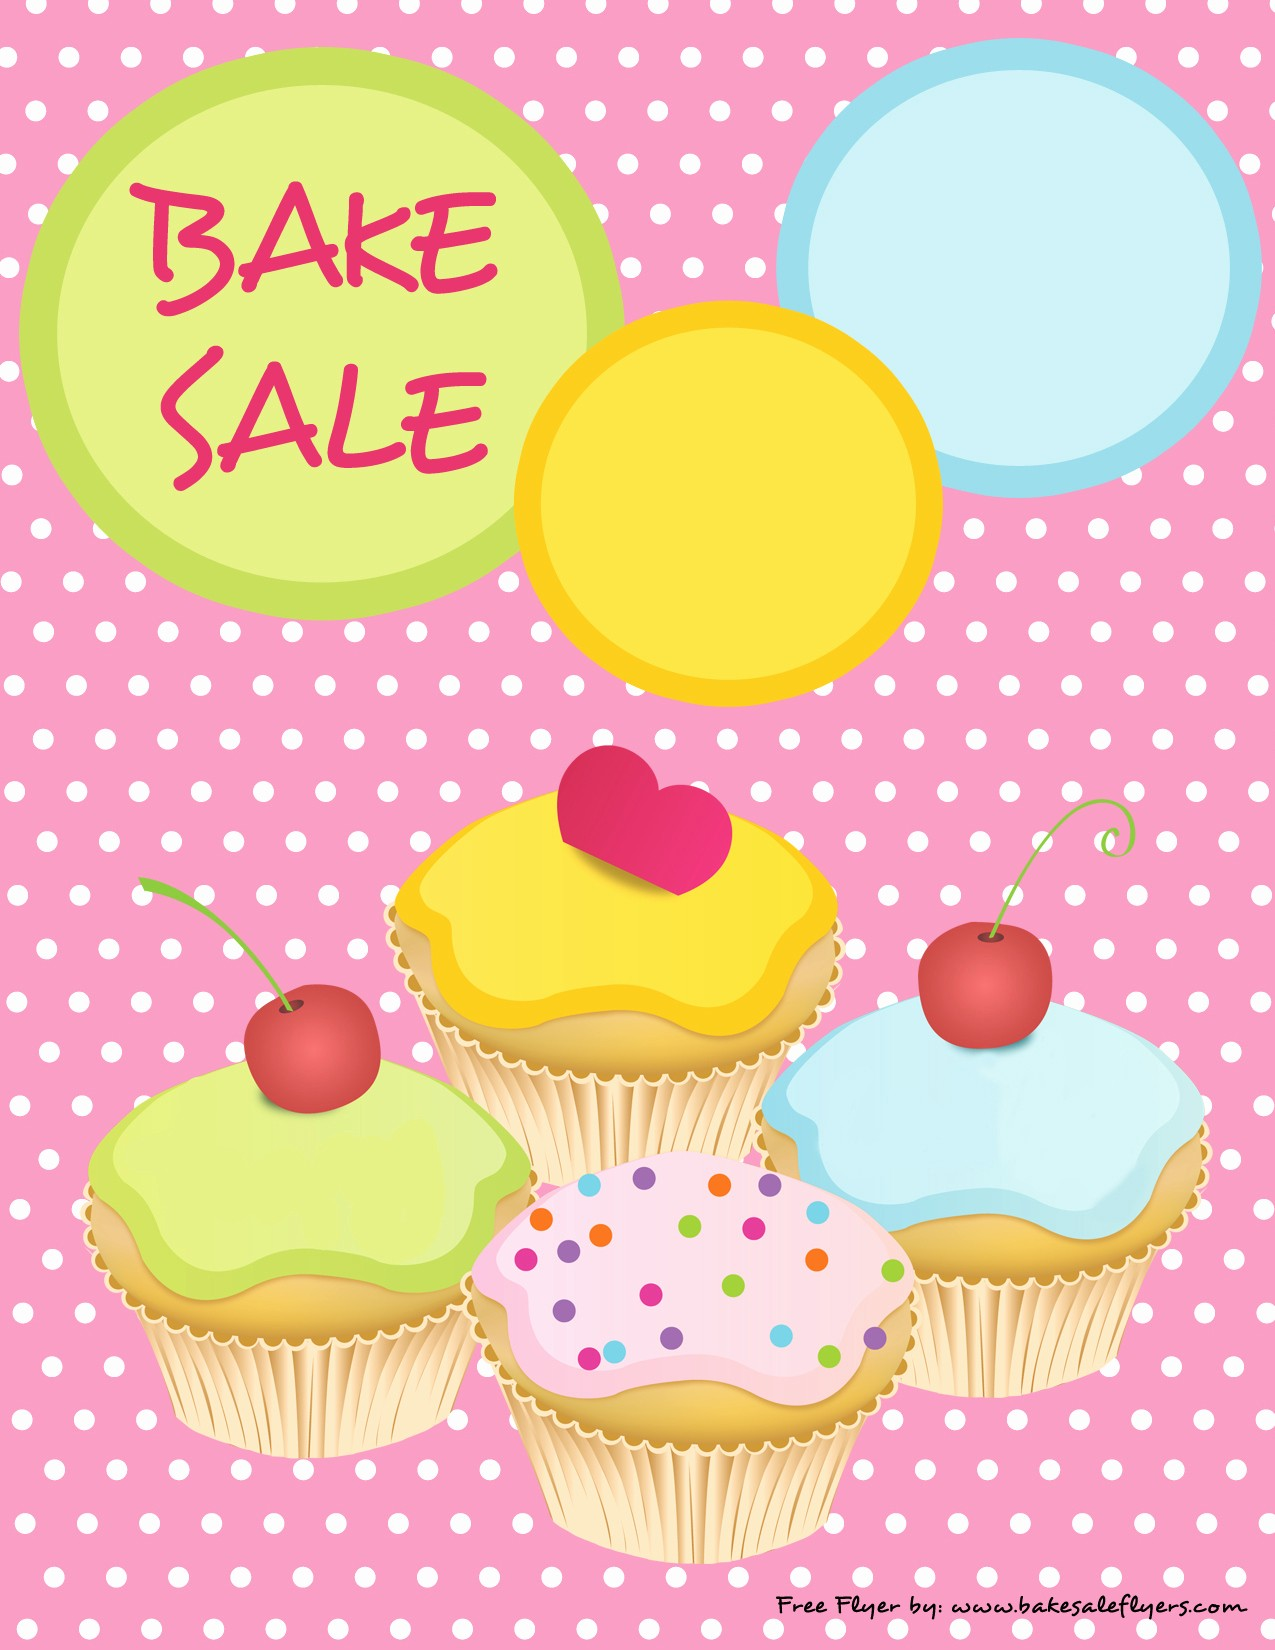 Bake Sale Flyer Template Word Unique Best S Of Bake Sale Template Microsoft Word Free